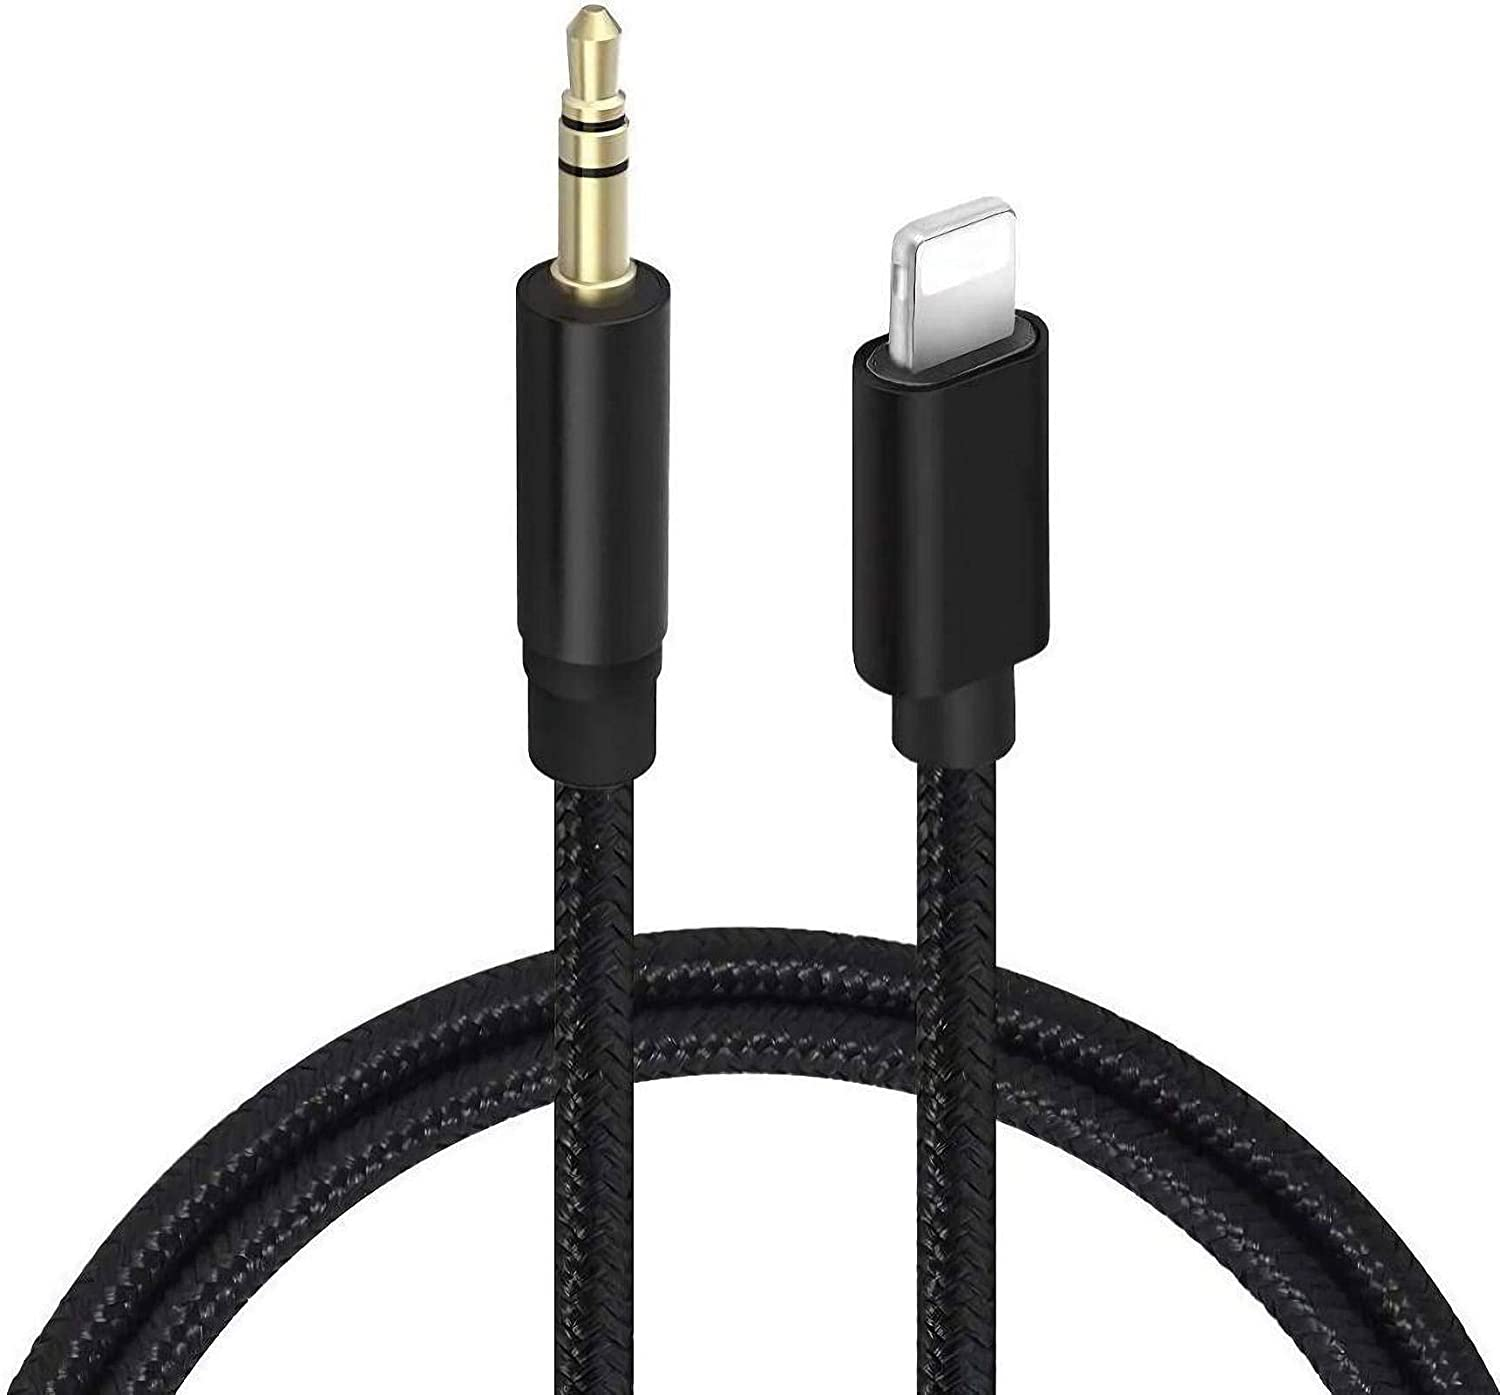 Aux Cord for iPhone, Glaida 3.5mm Aux Nylon Braided Stereo Audio Cable for Car Compatible with iPhone SE/11/11 Pro/XS/XR/X 8 7 6 to Car/Home Stereo, Speaker, Headphone - 3.3ft Black